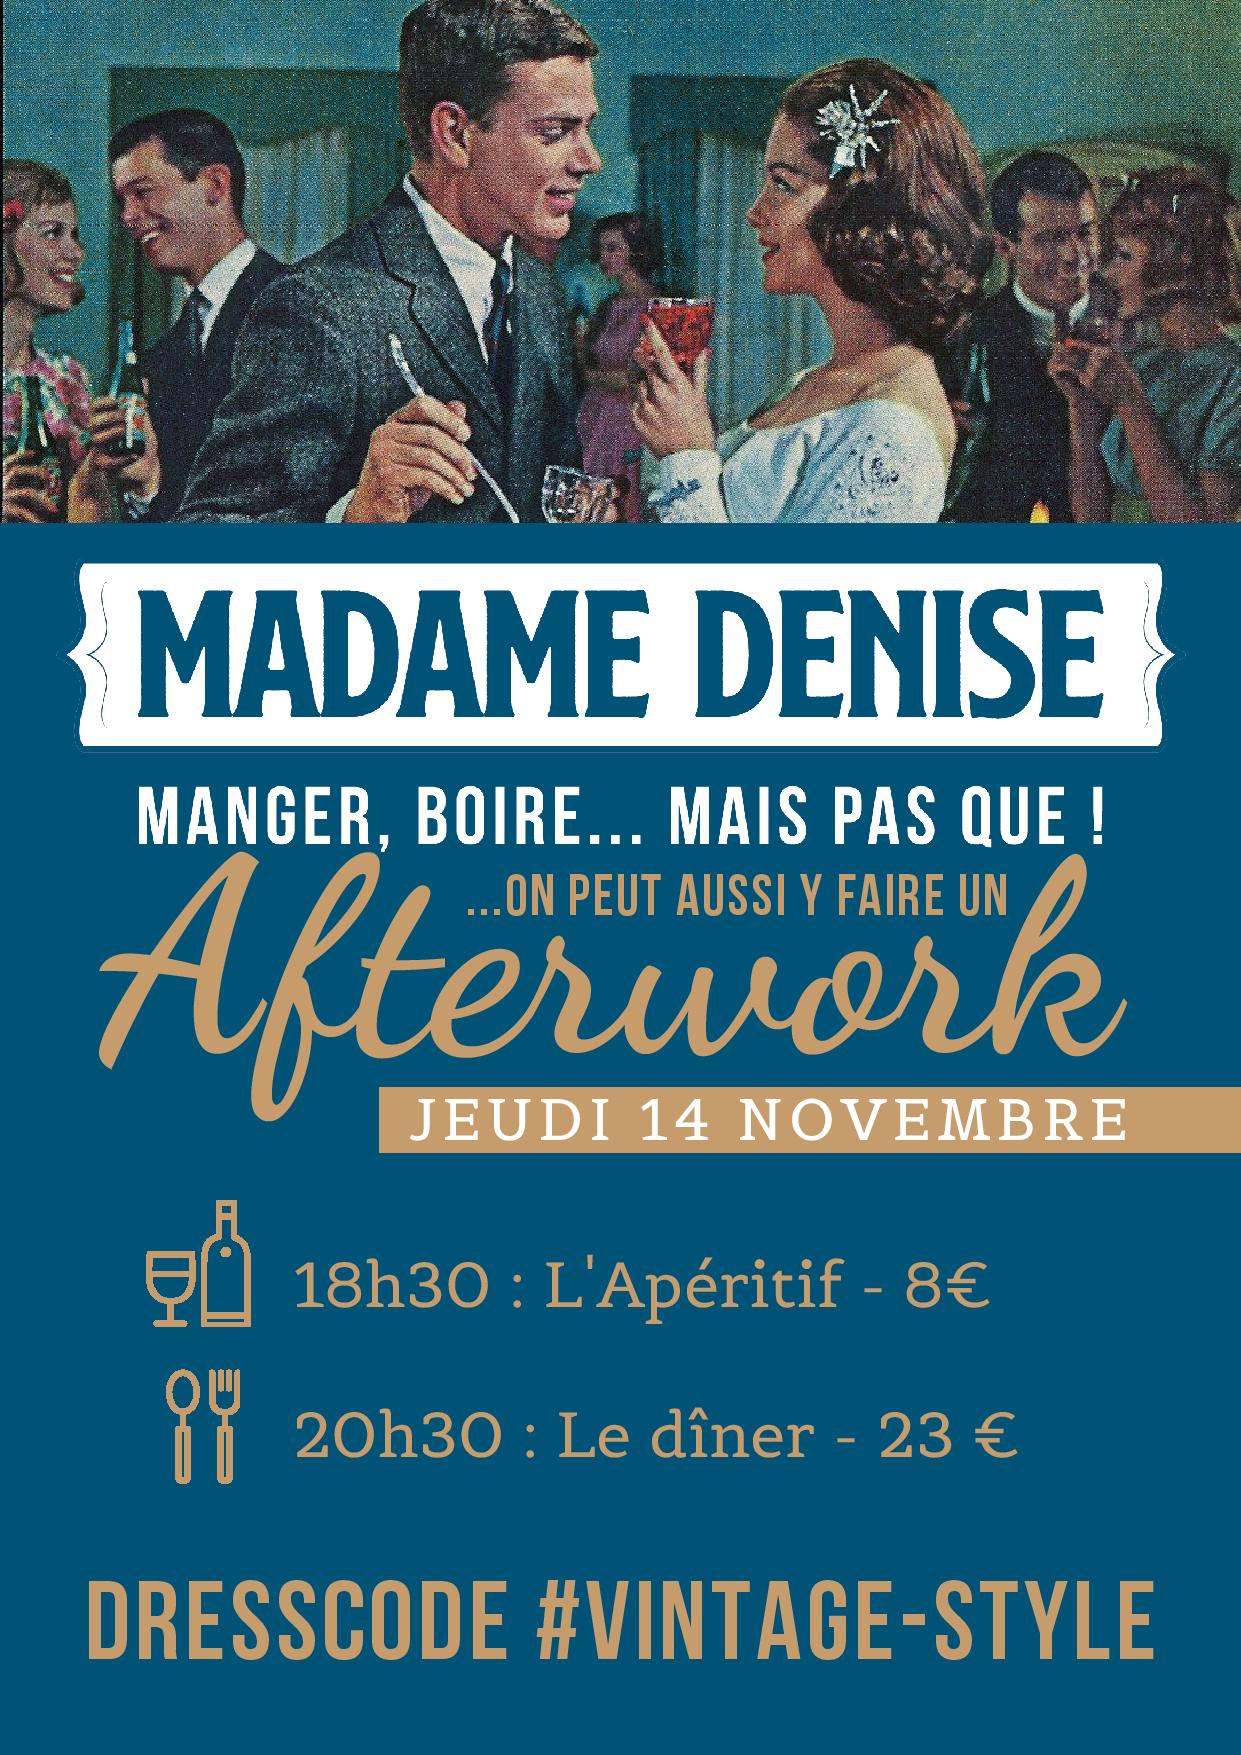 AFTERWORK - Madame Denise - Apéritif